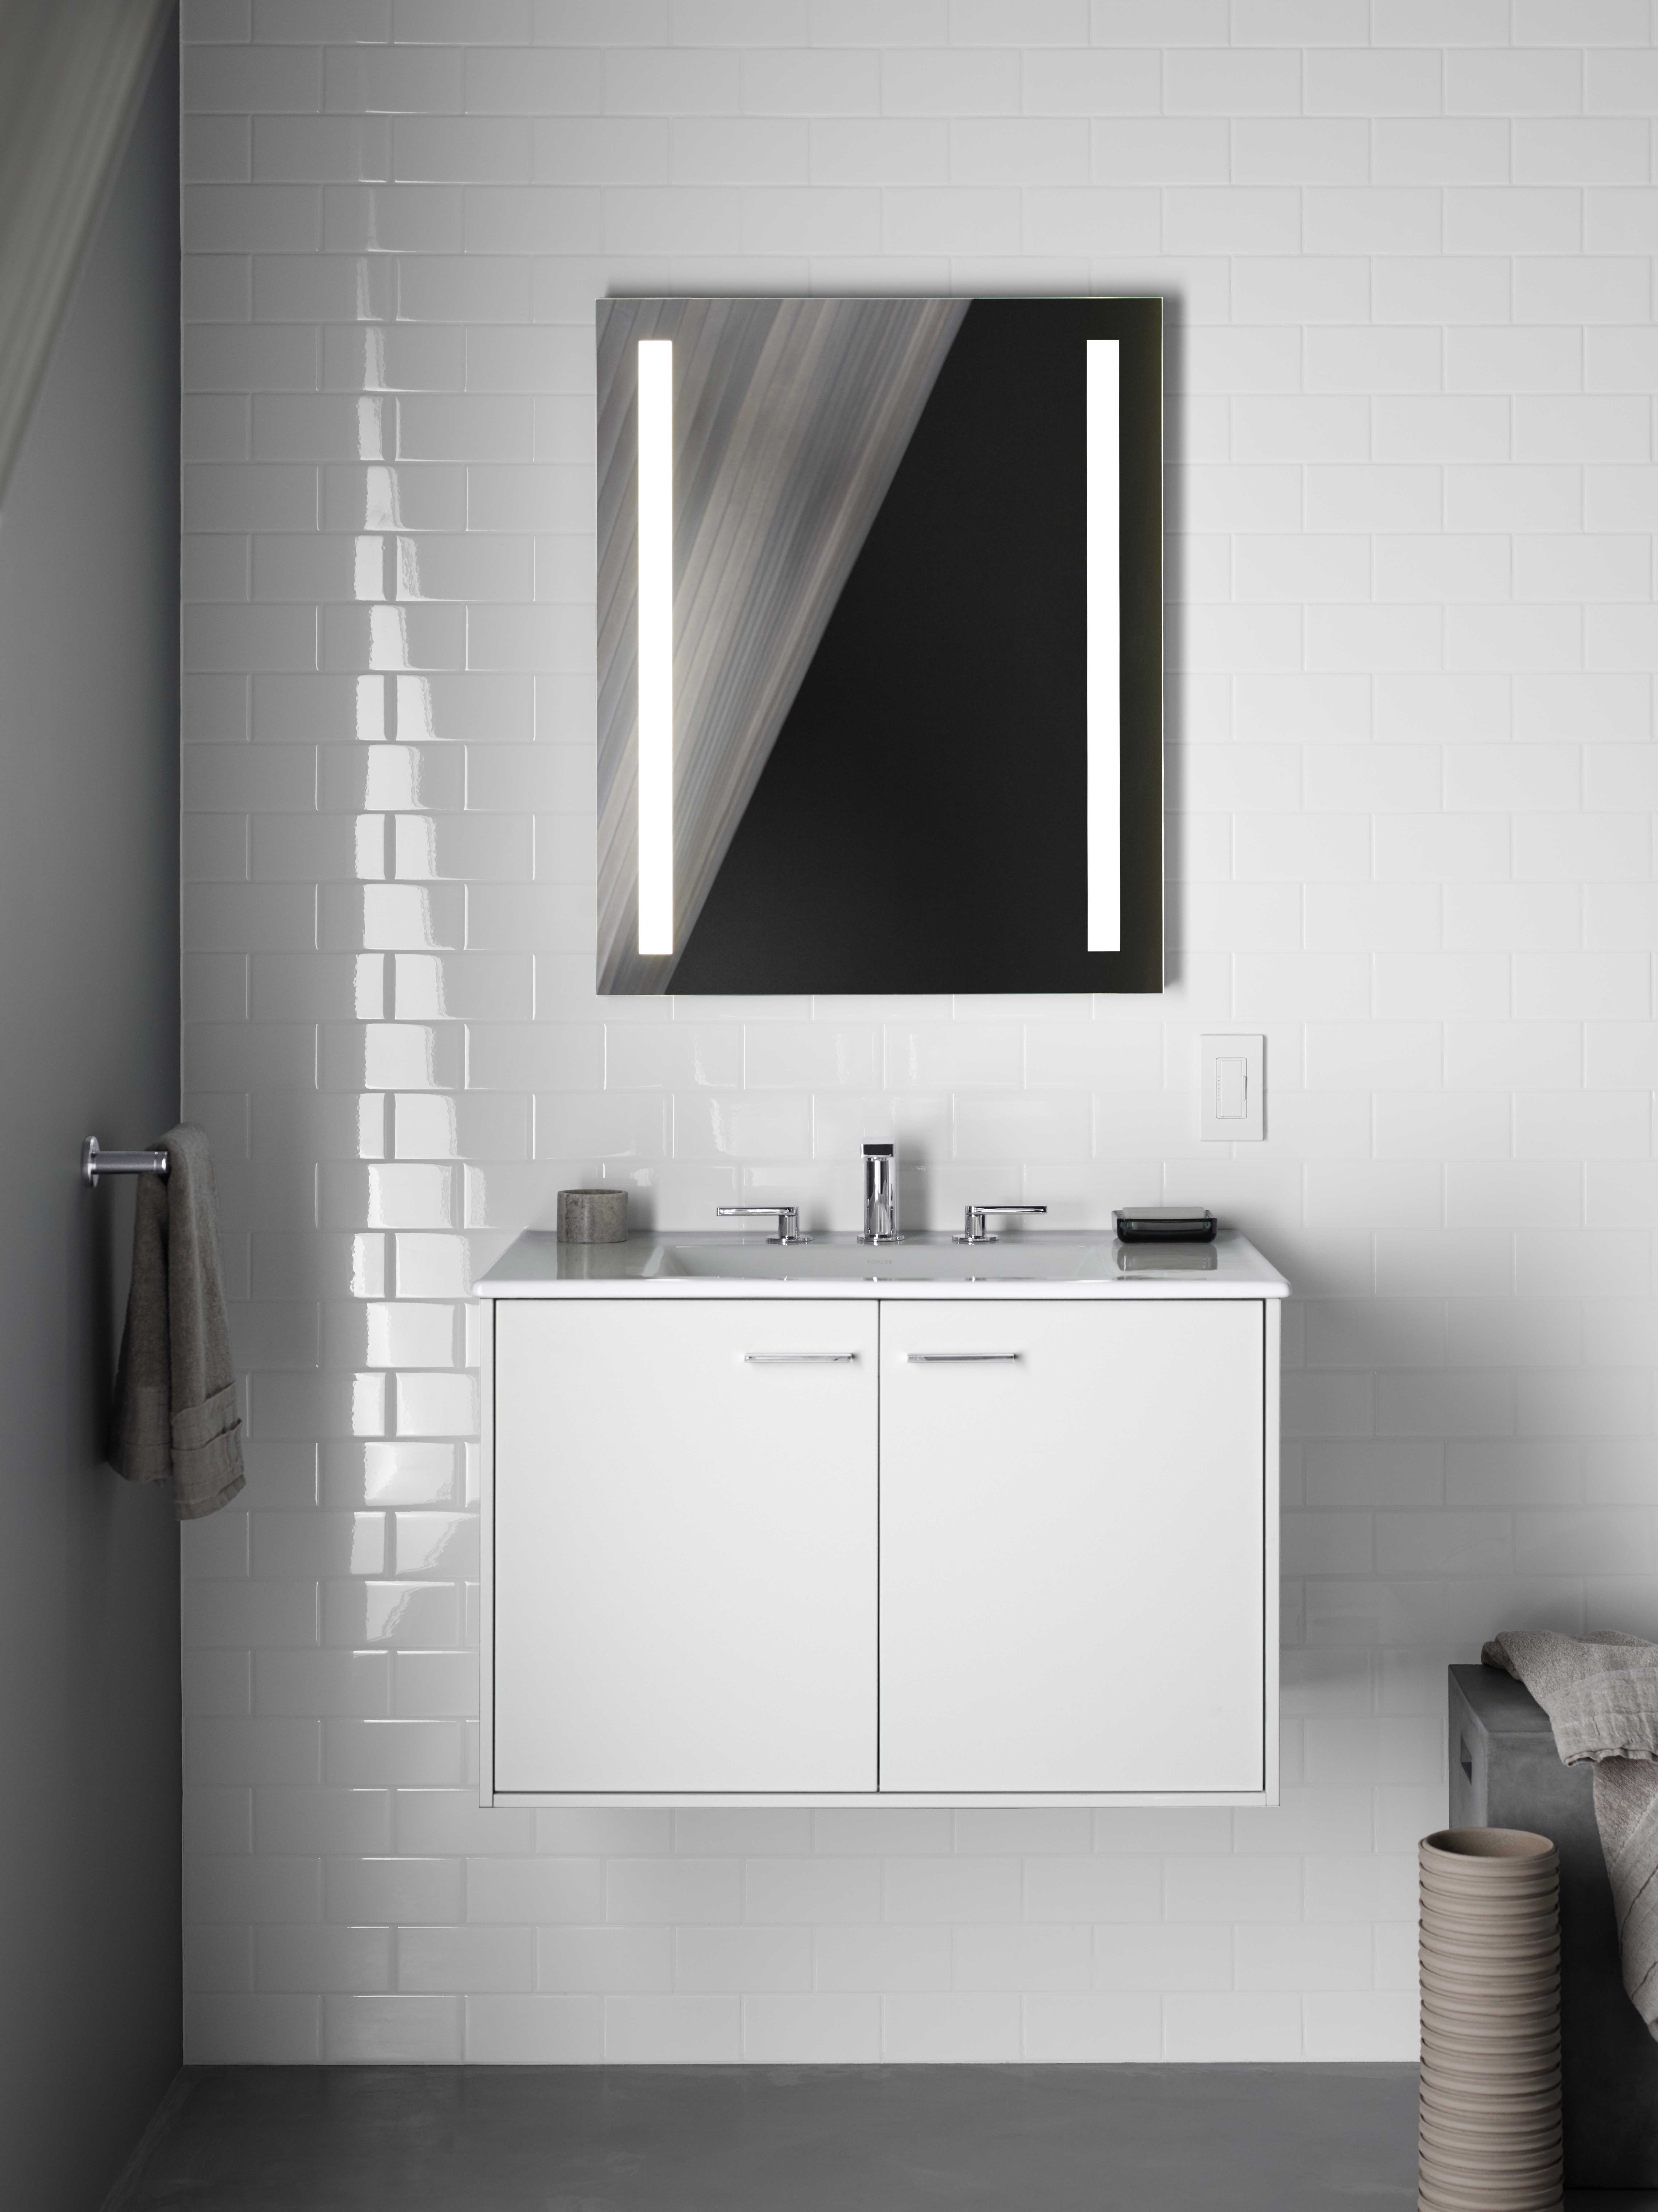 Jute® Vanity     Verdera lighted medicine cabinet     Composed Faucet     Mixing a matte-finished vanity with high-gloss walls bring layered visual interest to the space.